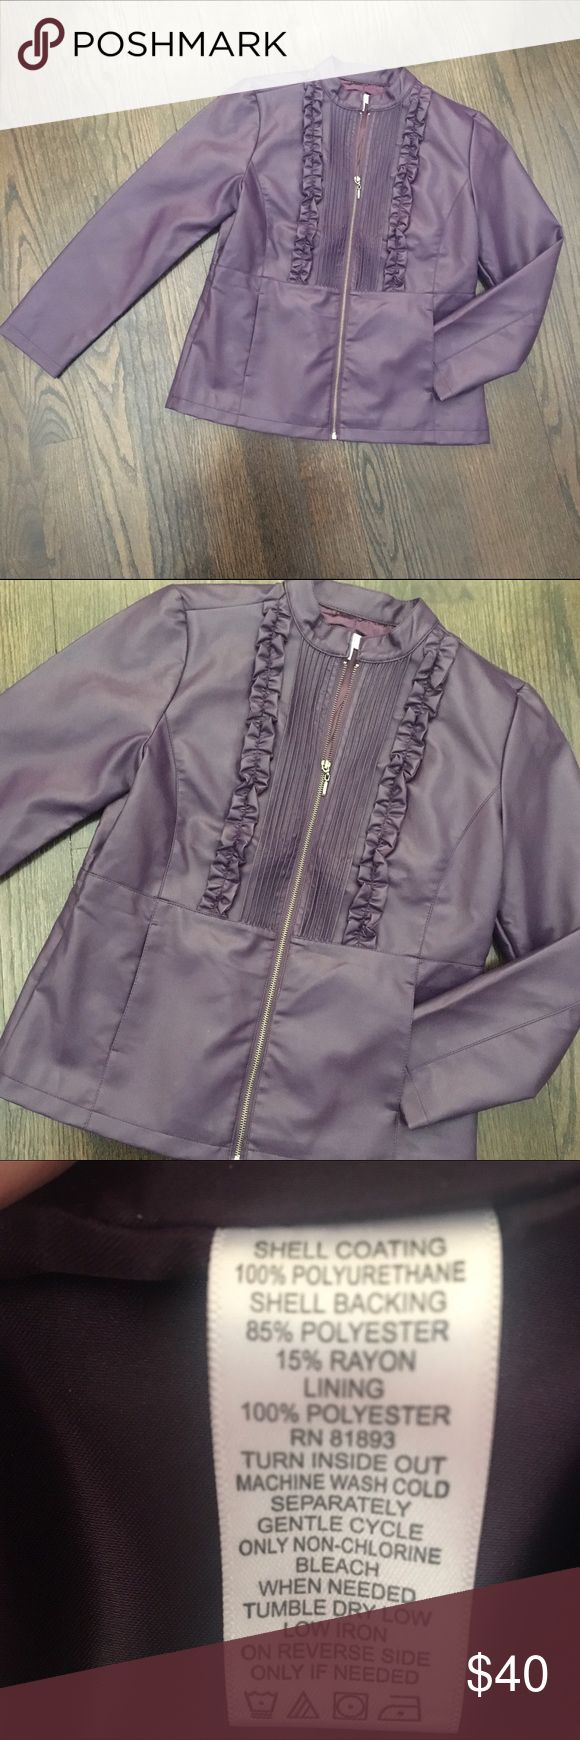 NWOT Susan Graver Faux Leather Purple Jacket Brand new, new worn. Susan Graver faux leather jacket with ruffle detail. Dark purple. Fully lined. Front pockets. Zip closure. Size XS, but it runs big and fits like a size Small/4-6. Susan Graver Jackets & Coats